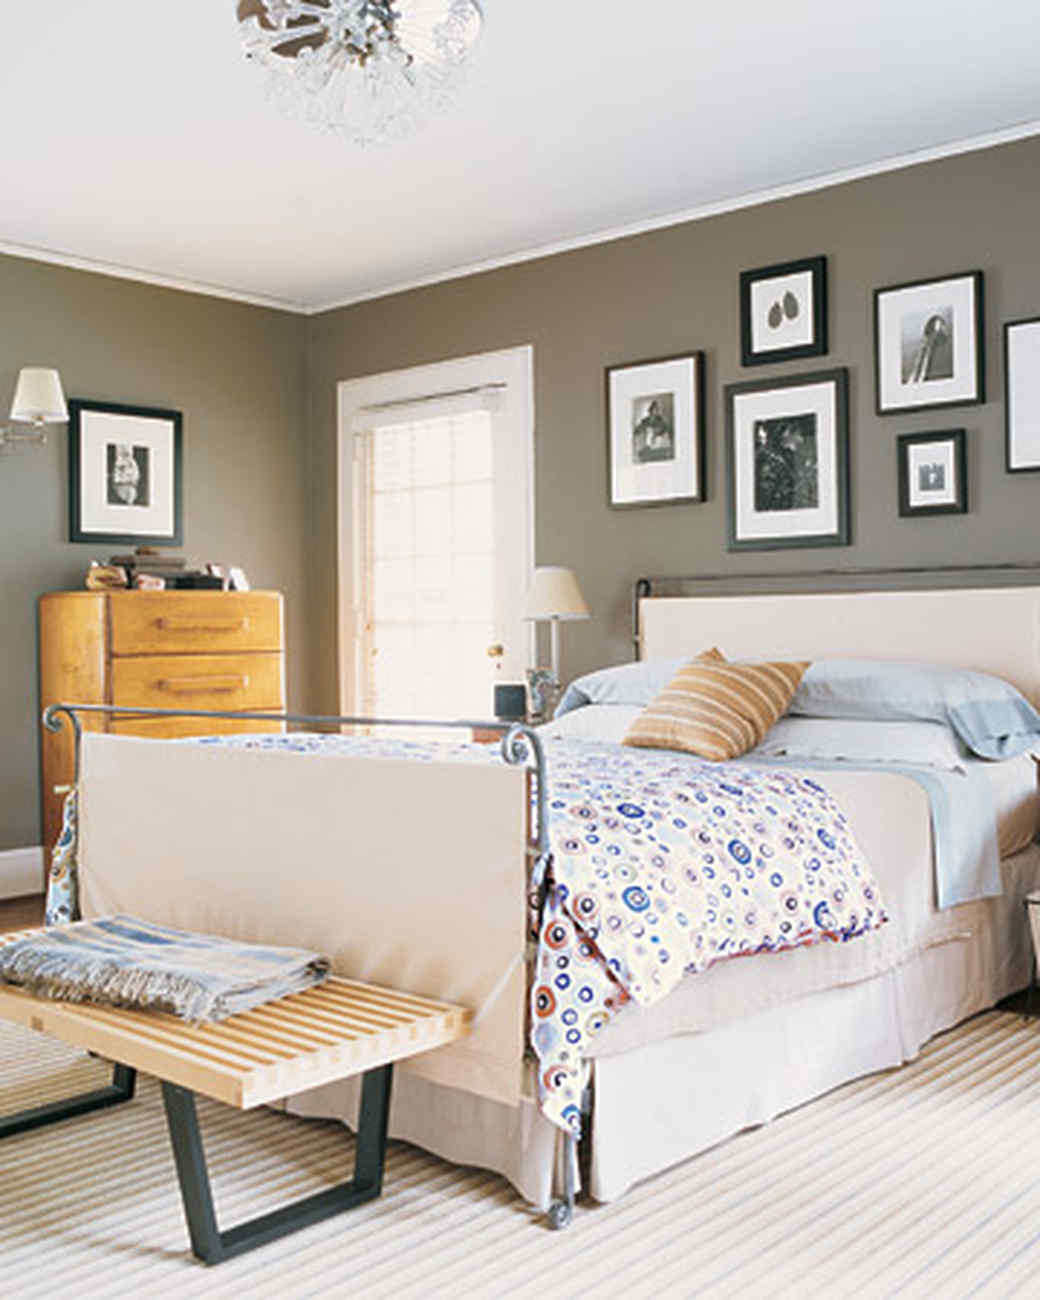 Home Tours of Amazing Bedrooms | Martha Stewart